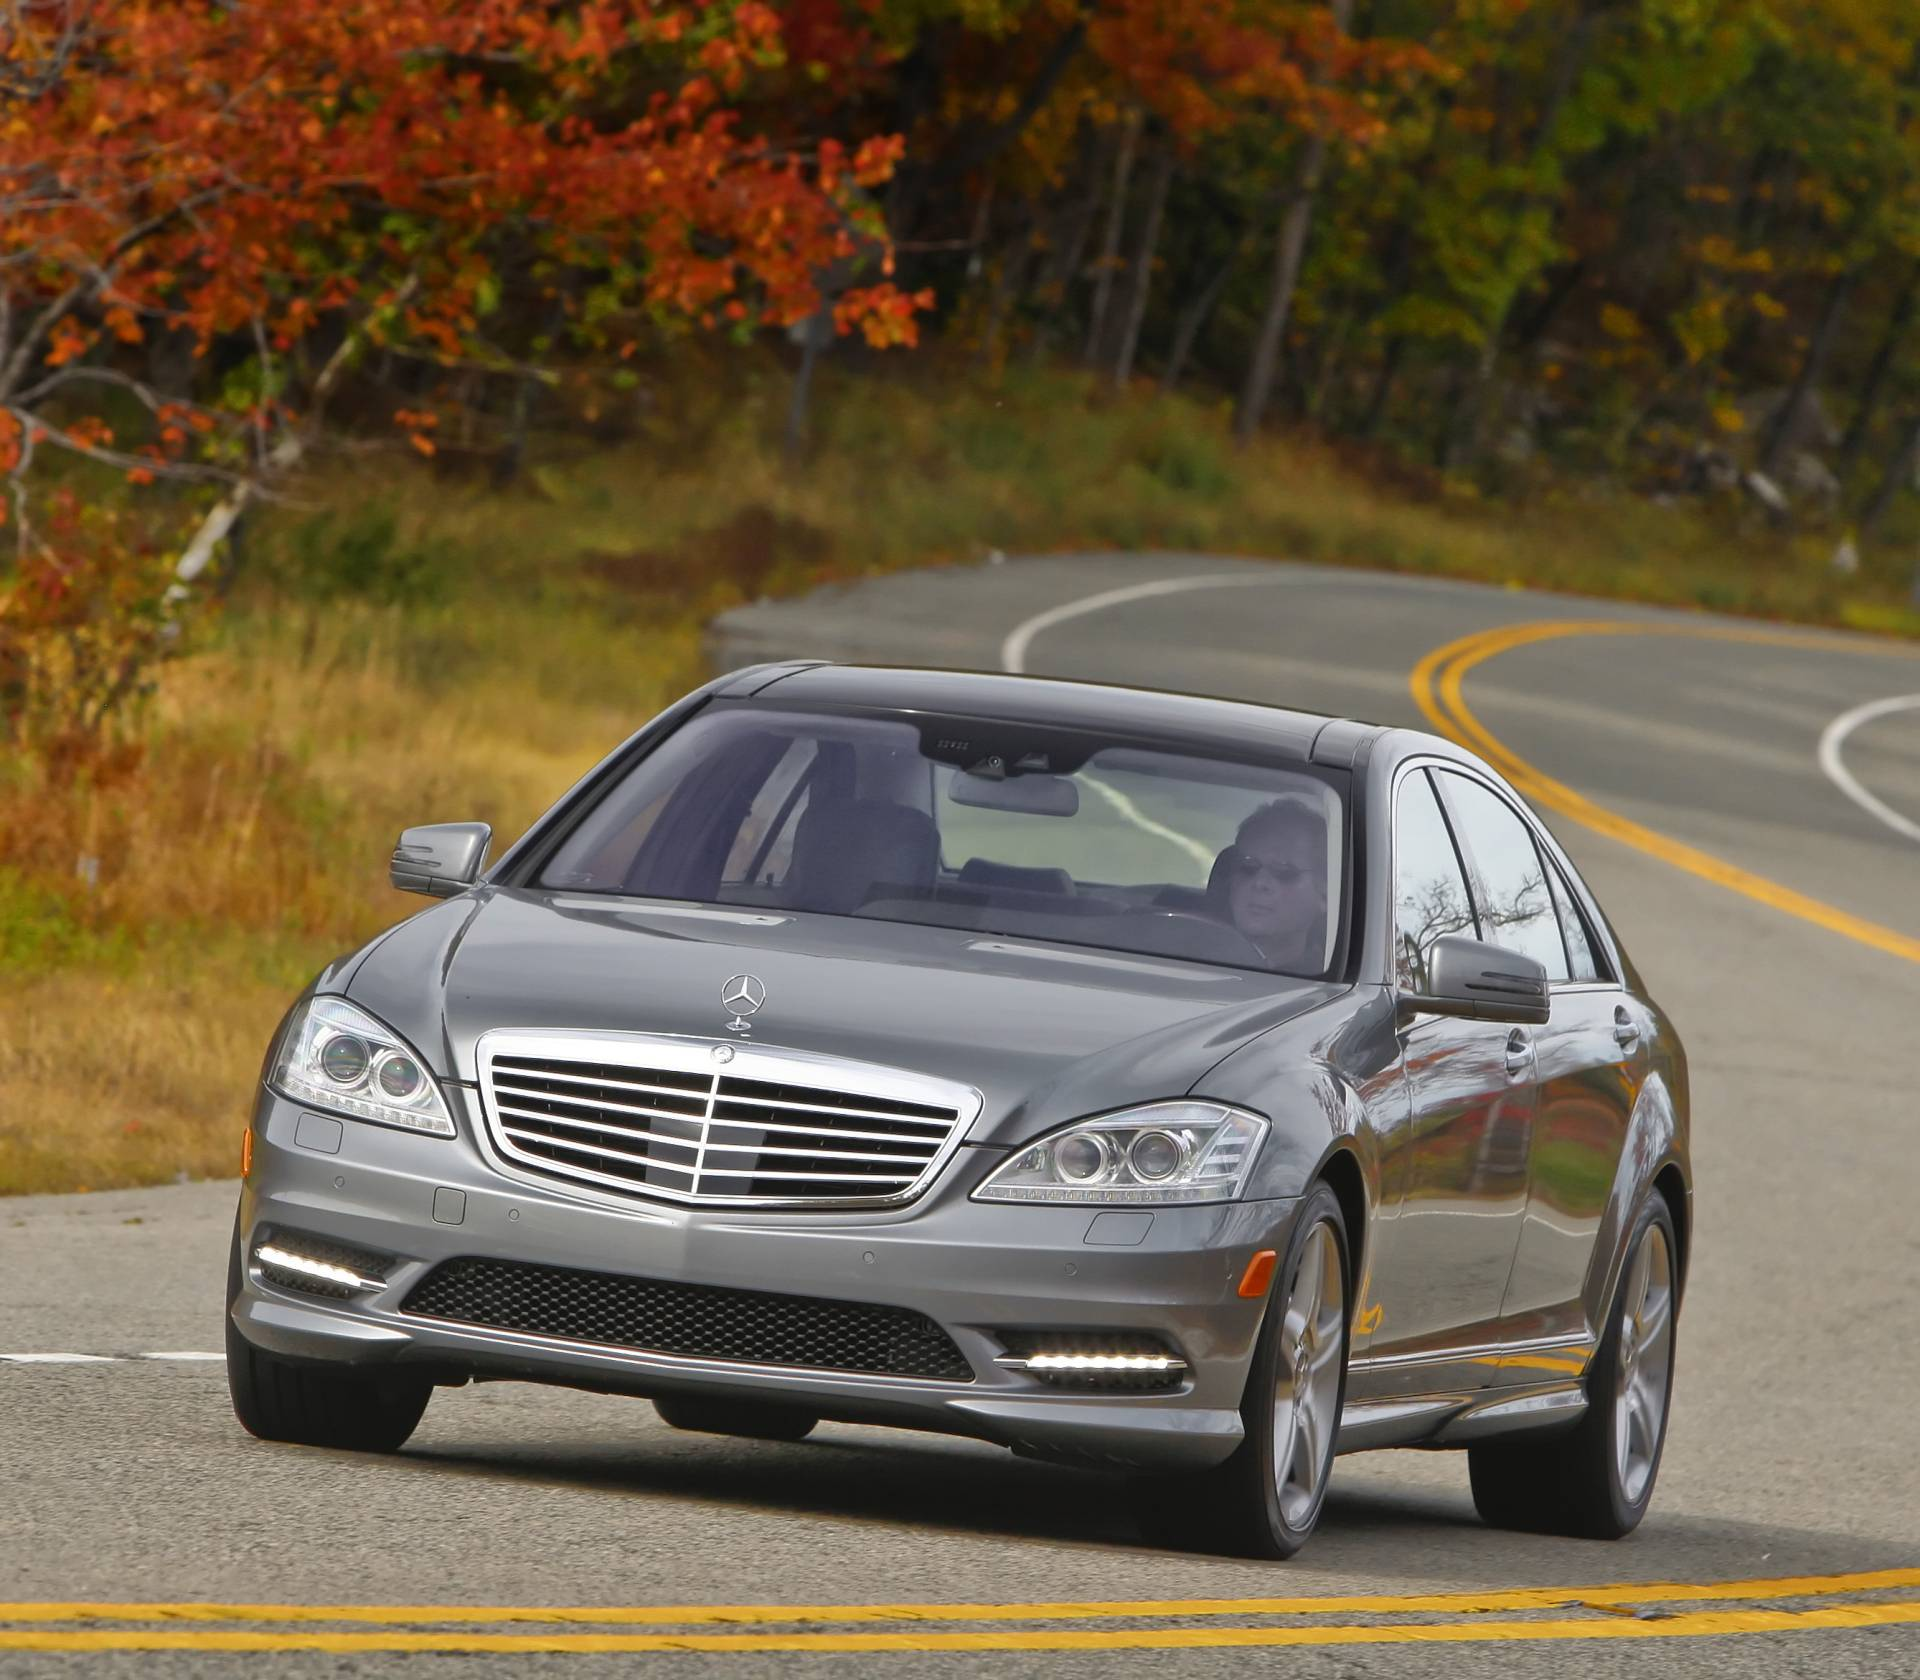 2013 Mercedes-Benz S550 News And Information